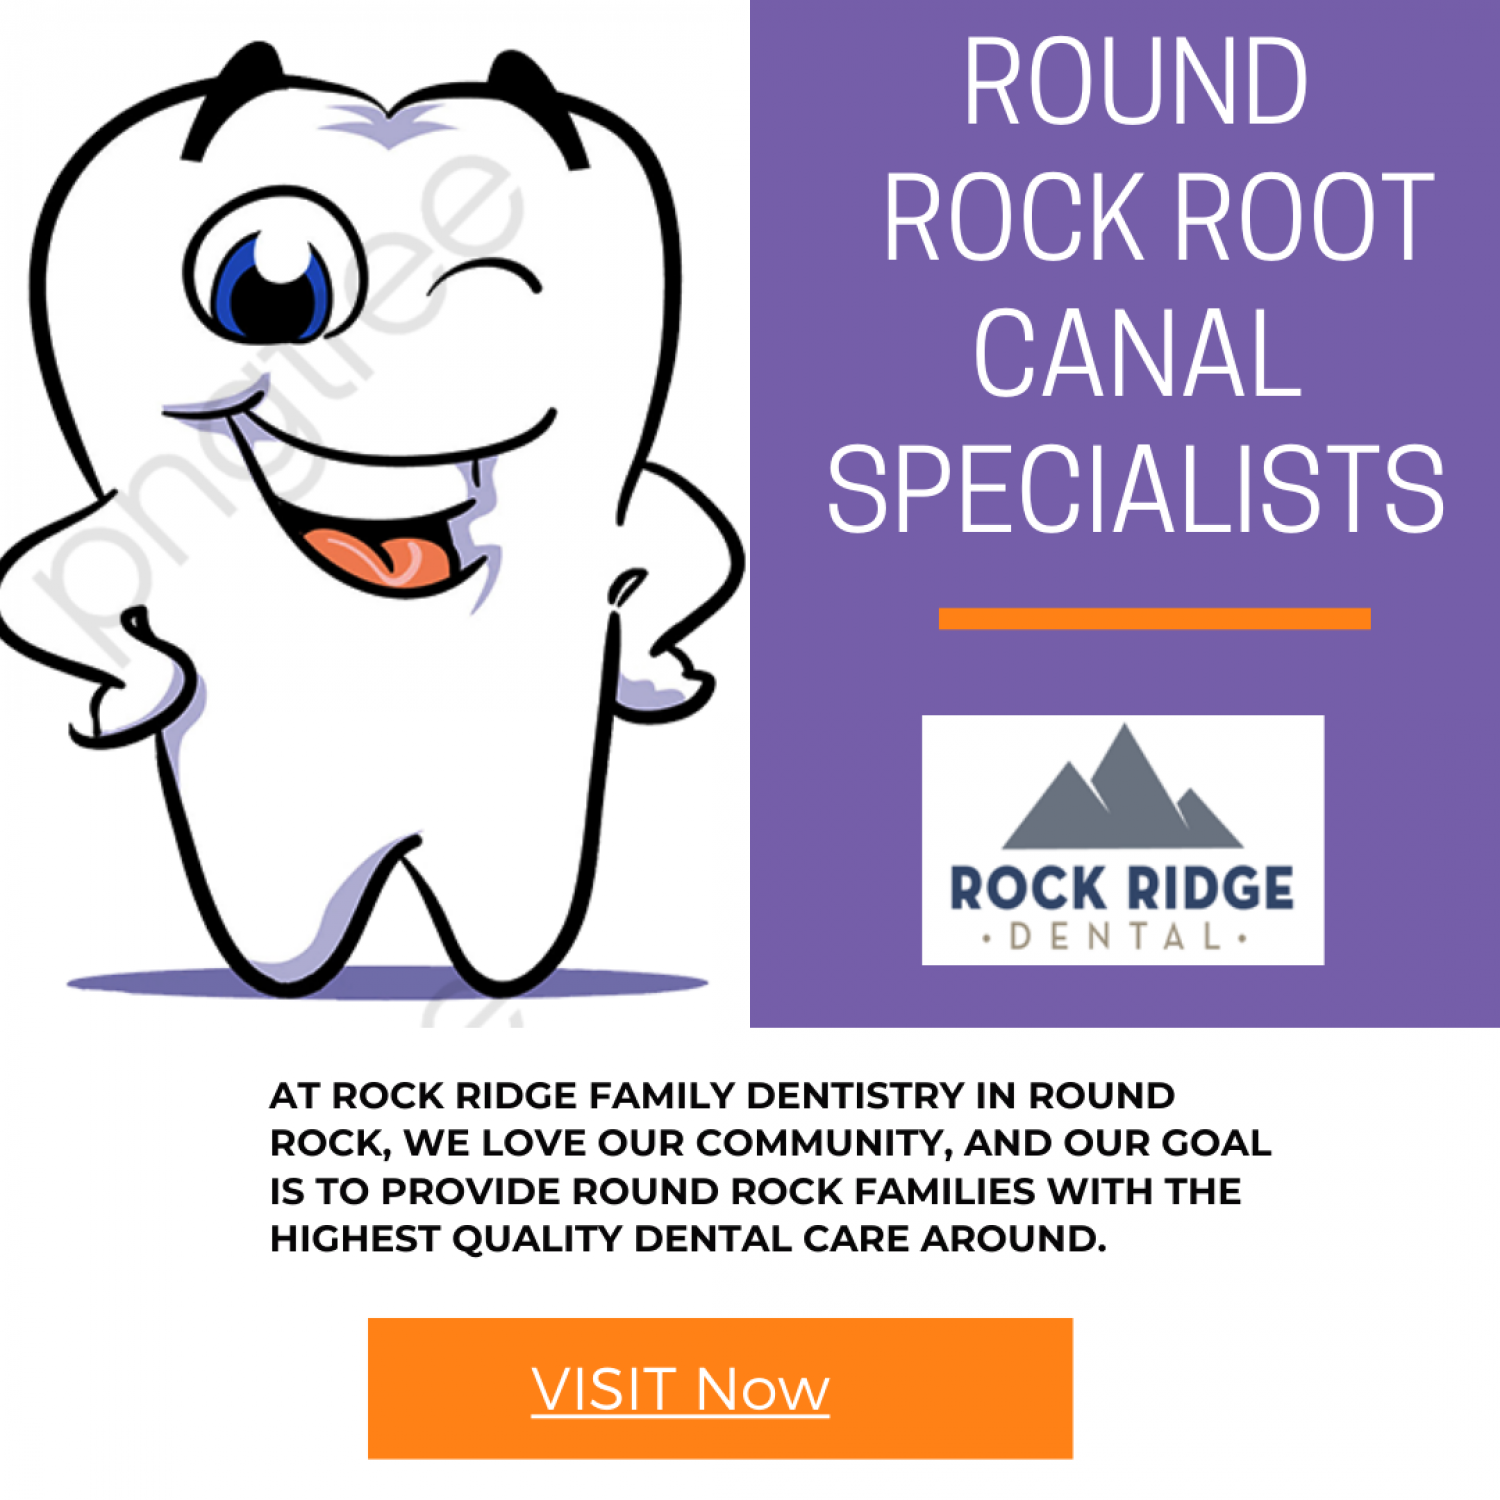 Meet The Round Rock Root Canal Specialists Infographic